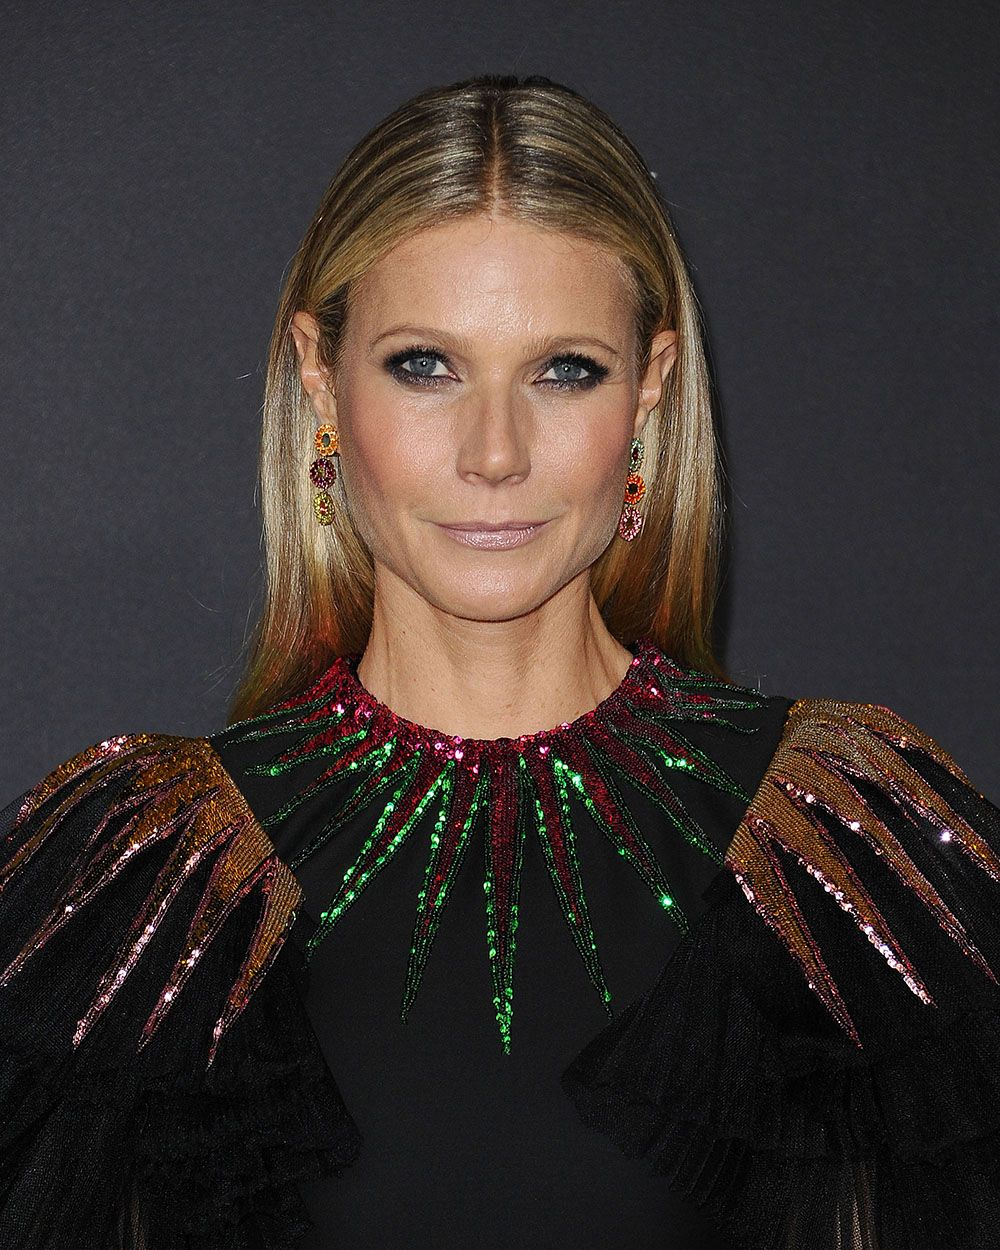 "<p>Make all the Goop jokes you want, but Gwynnie <a href=""https://www.yahoo.com/beauty/beauty-stories-gwyneth-paltrow-132907473.html"" target=""_blank"" data-tracking-id=""recirc-text-link"">told <em data-redactor-tag=""em"" data-verified=""redactor"">Yahoo</em> Beauty</a> she'll throw down for fries—""and cheese and martinis and all that kind of thing.""<span class=""redactor-invisible-space"" data-verified=""redactor"" data-redactor-tag=""span"" data-redactor-class=""redactor-invisible-space""> Sprinkled with spirulina and nutritional yeast, though? JK.</span></p>"